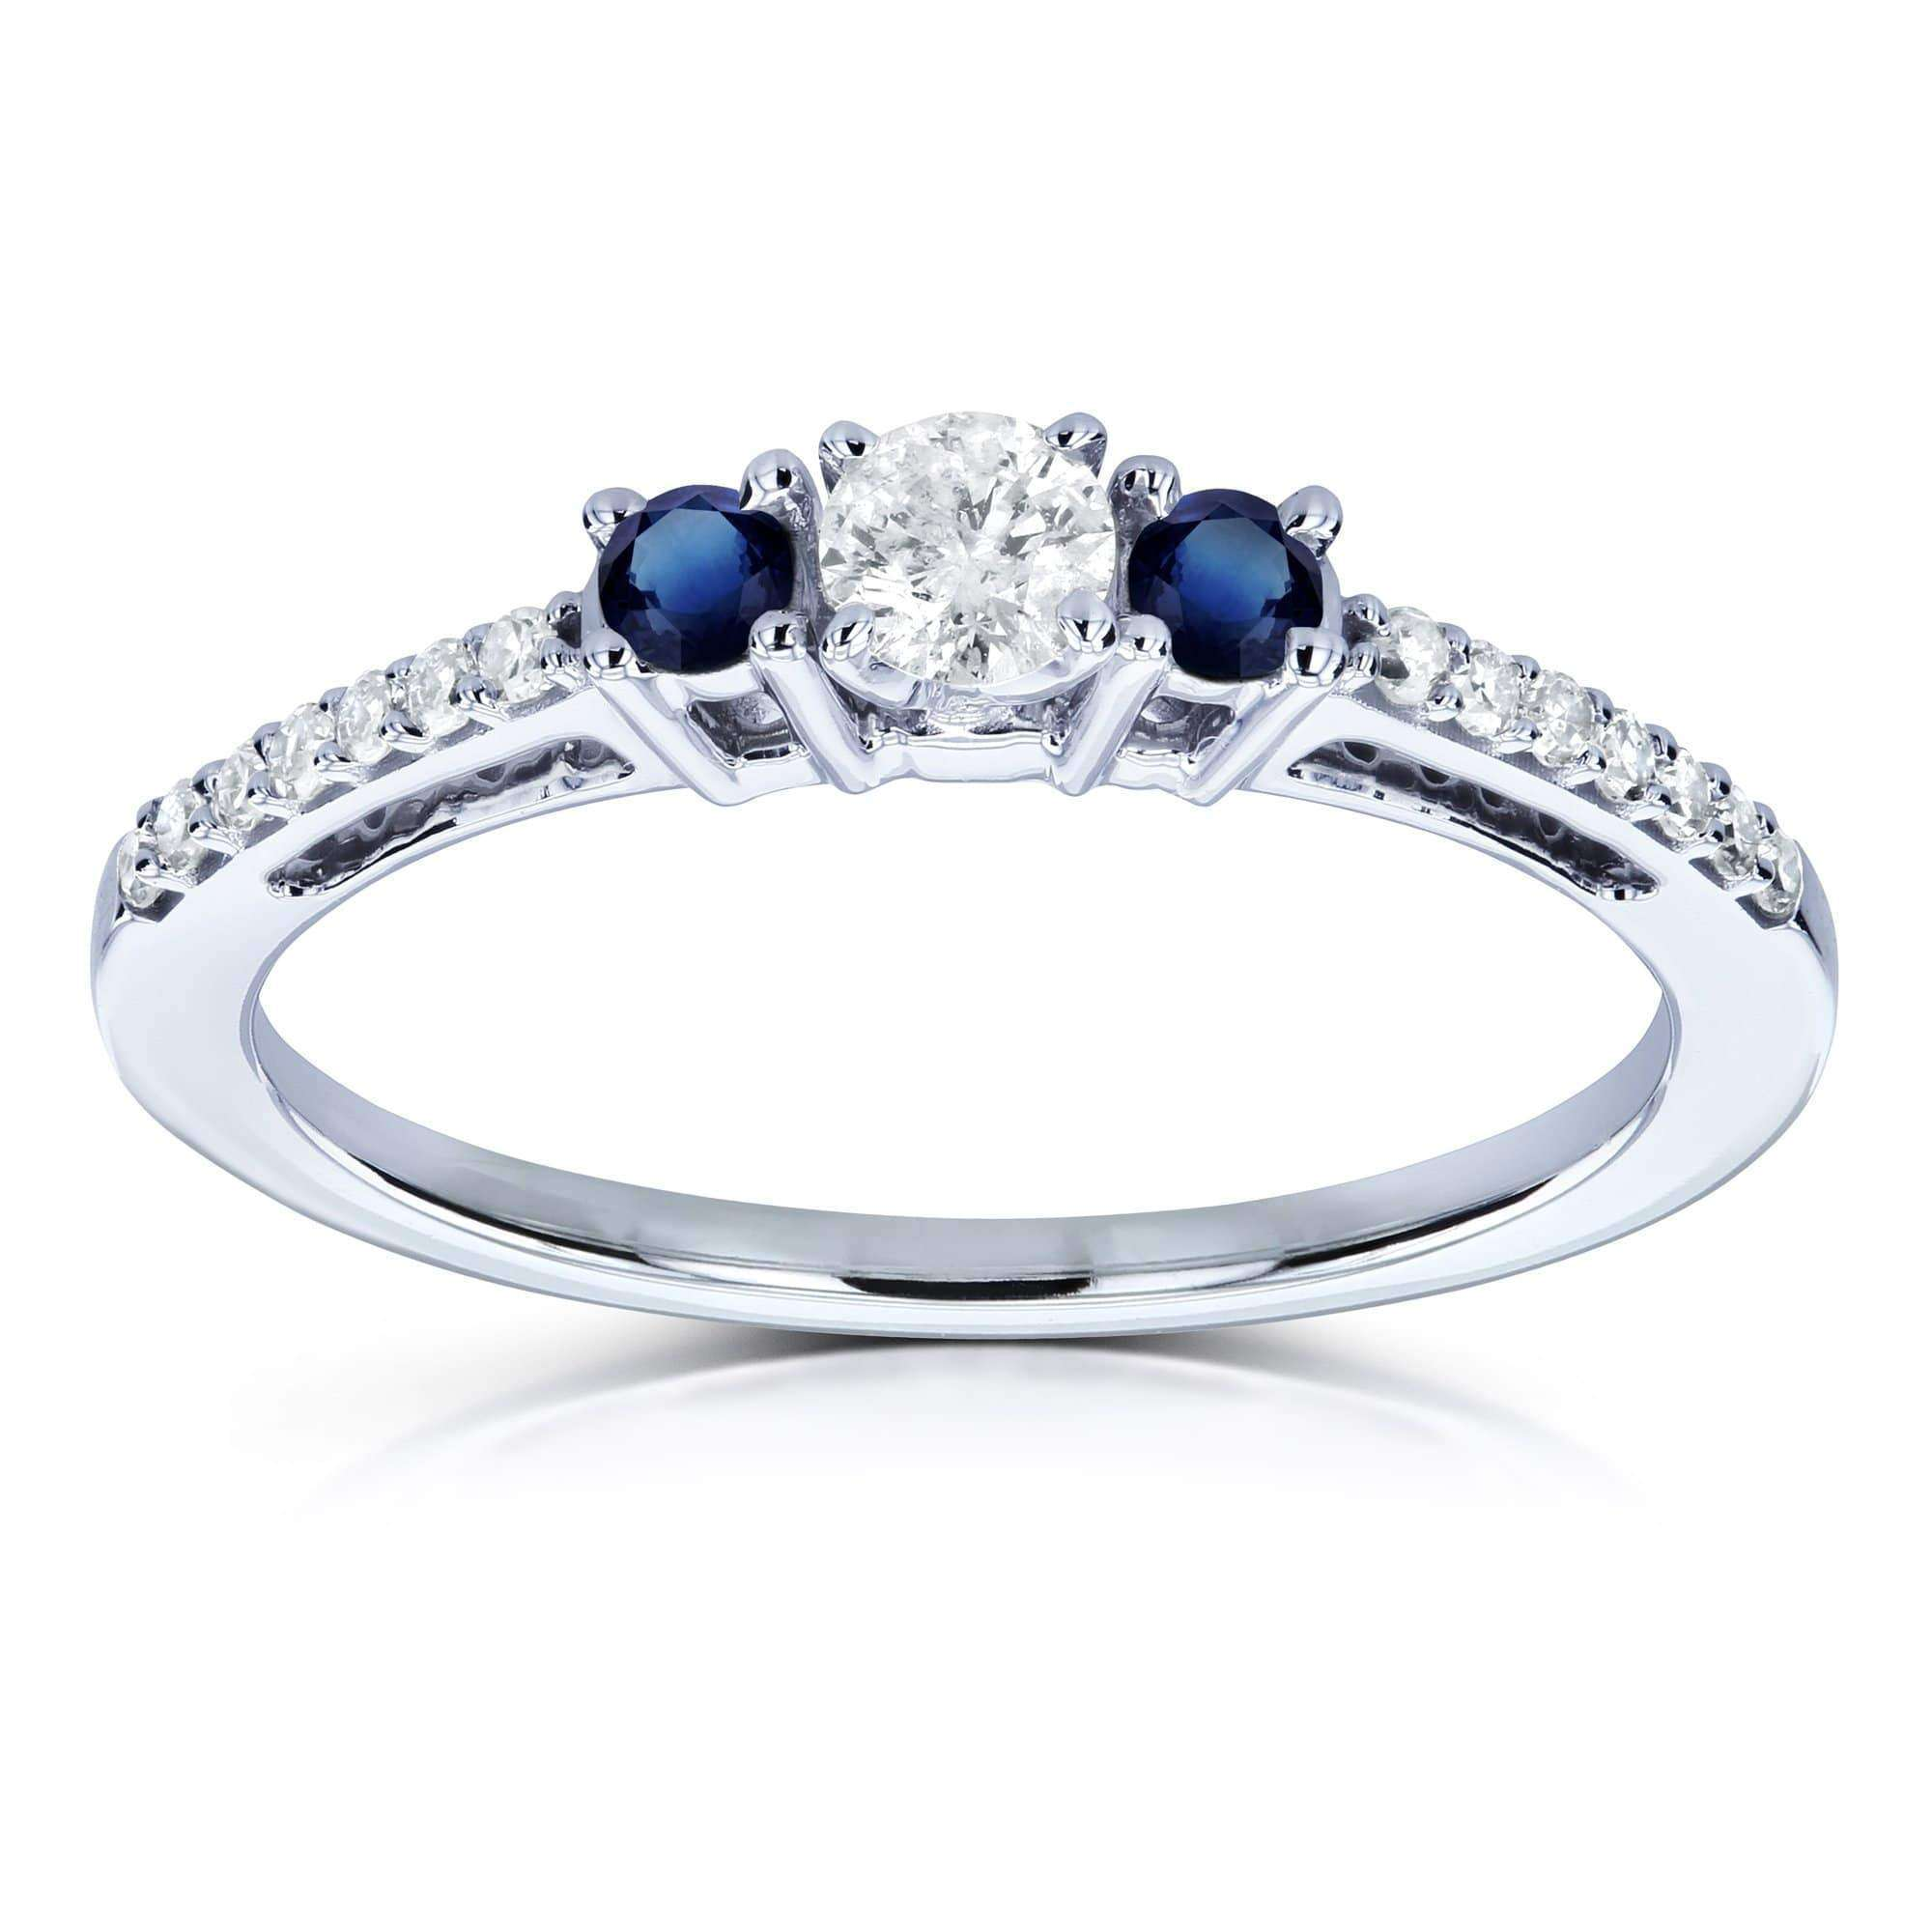 Cheap Three Stone Round Diamond and Sapphire Engagement Ring 1/4 Carat TW in 10k White Gold - 9.5